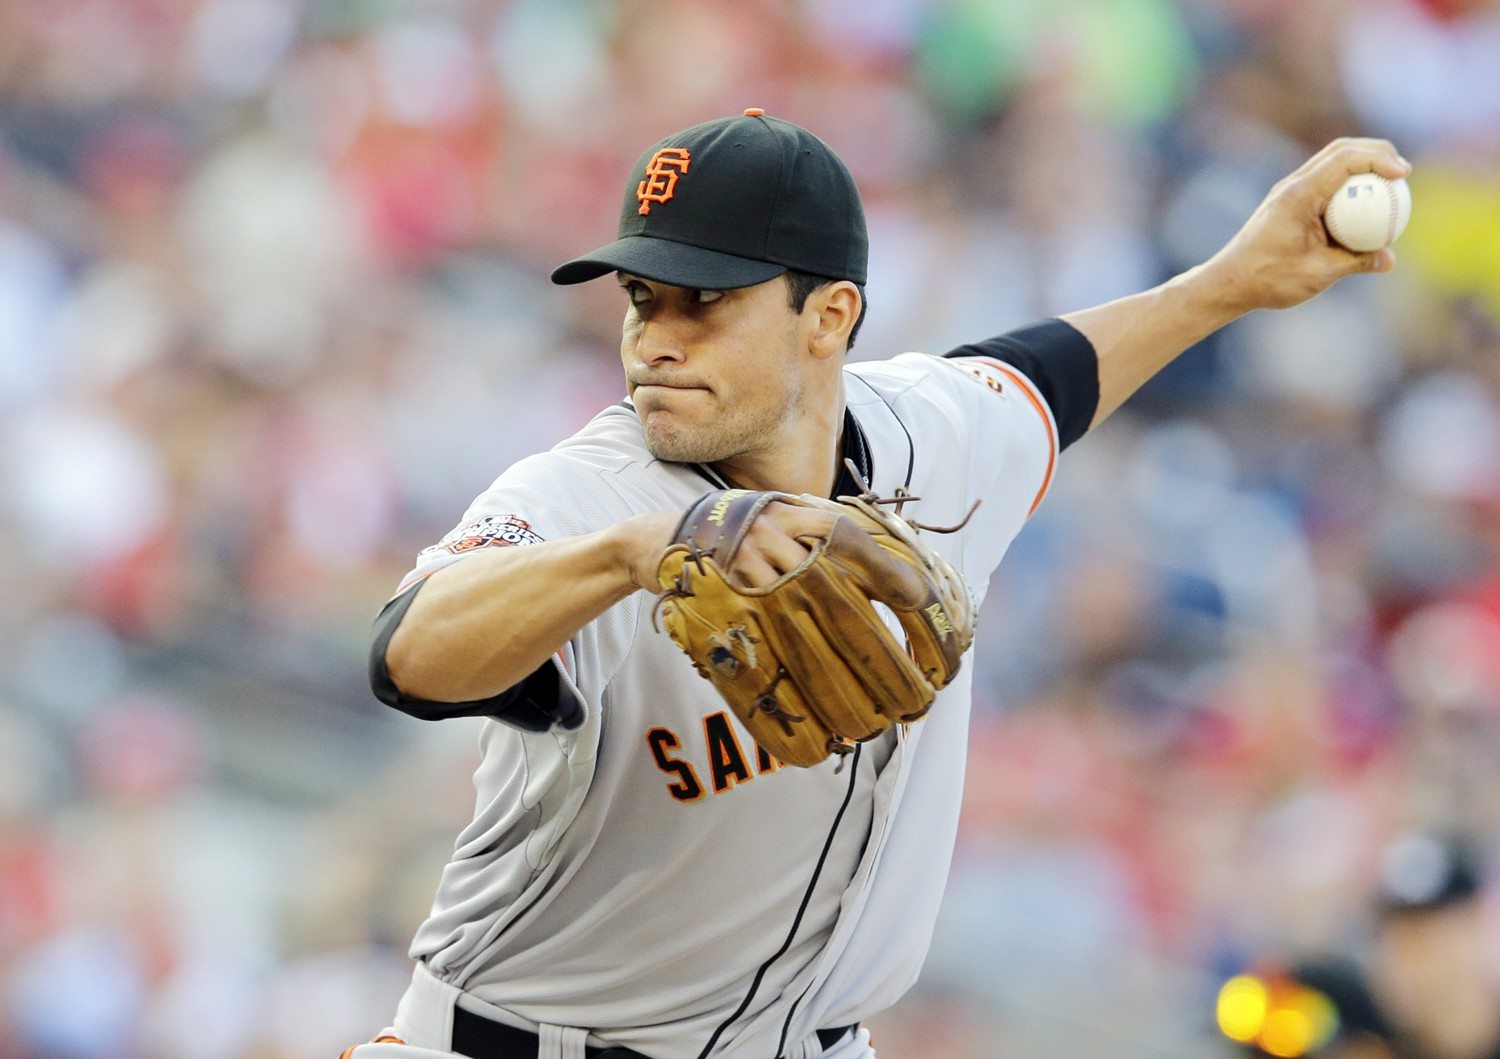 alex brandon/AP file photoAfter the Giants announced the signing of veteran Tim Hudson